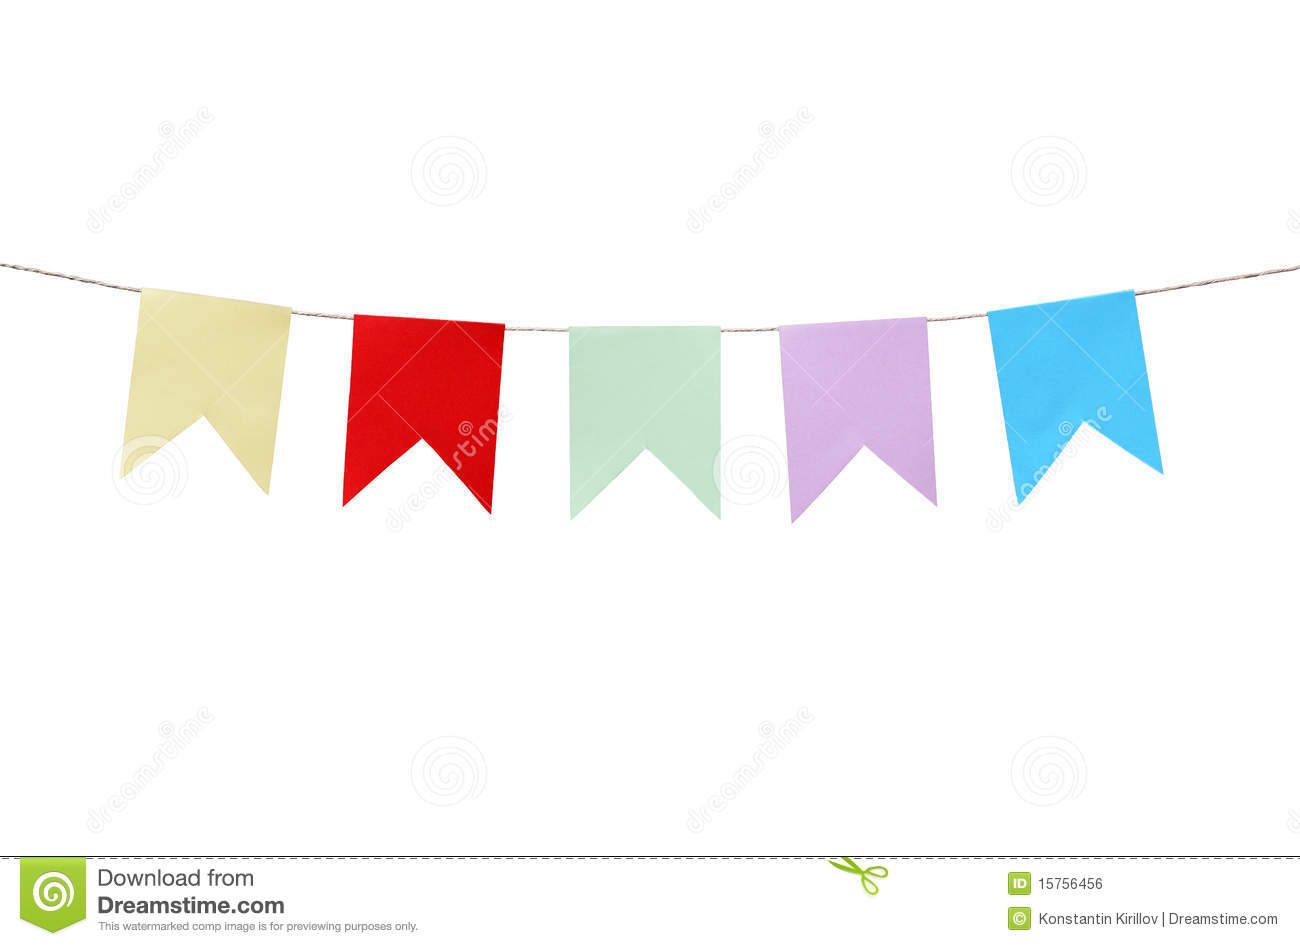 hanging chair rope pvc pipe motley paper flags royalty free stock image - image: 15756456